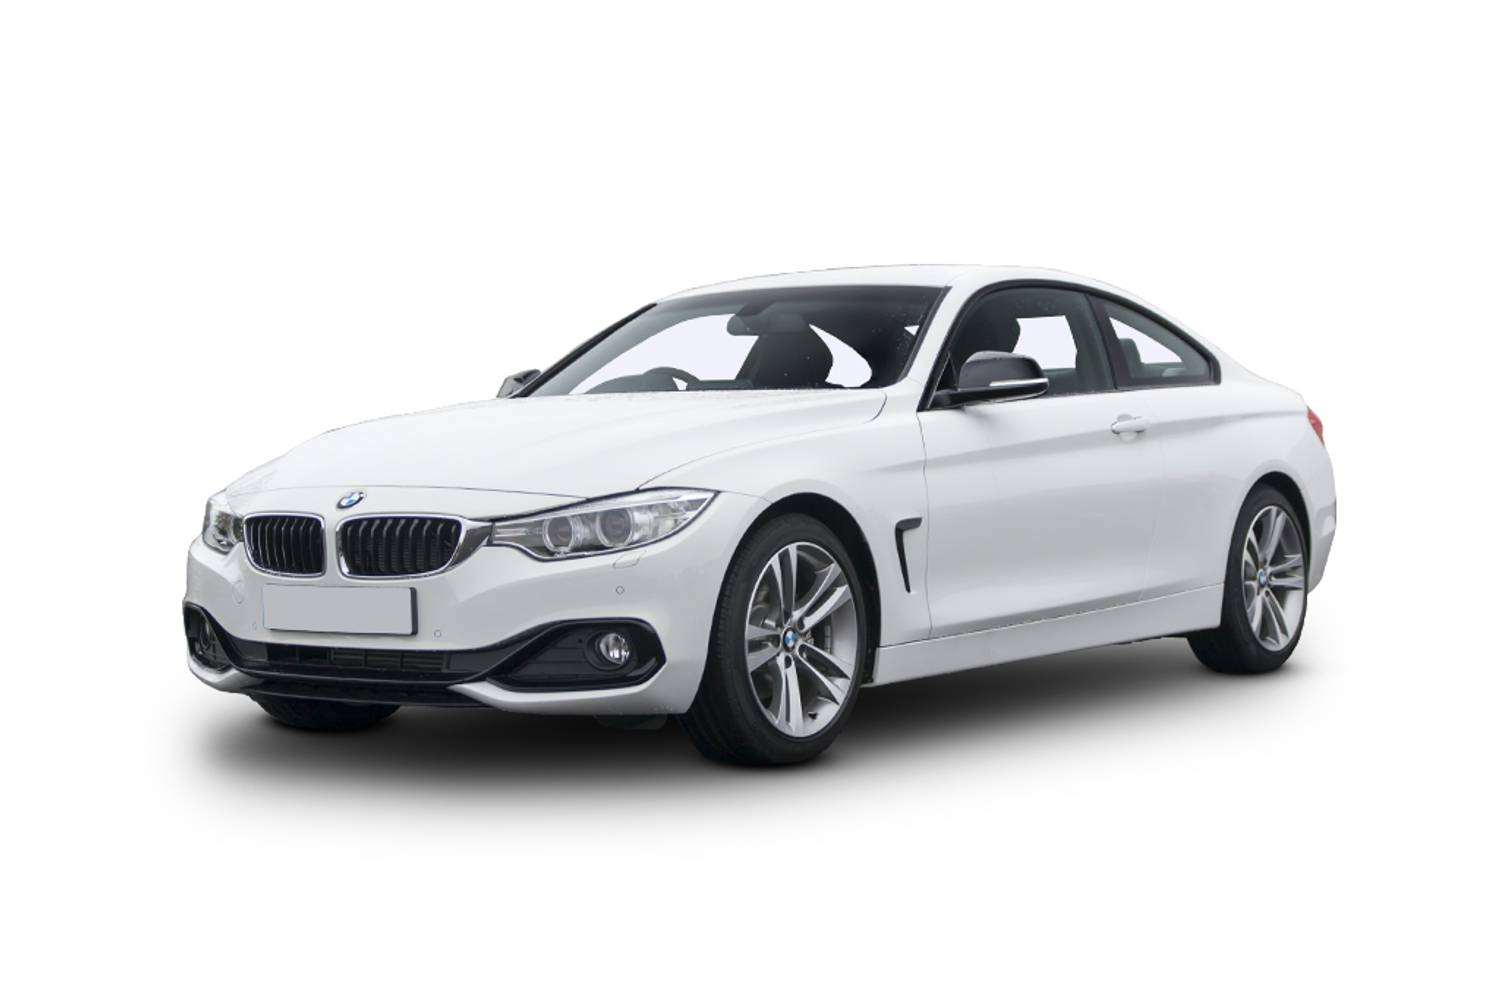 BMW 4 Series Coupe 2dr Front Three Quarter